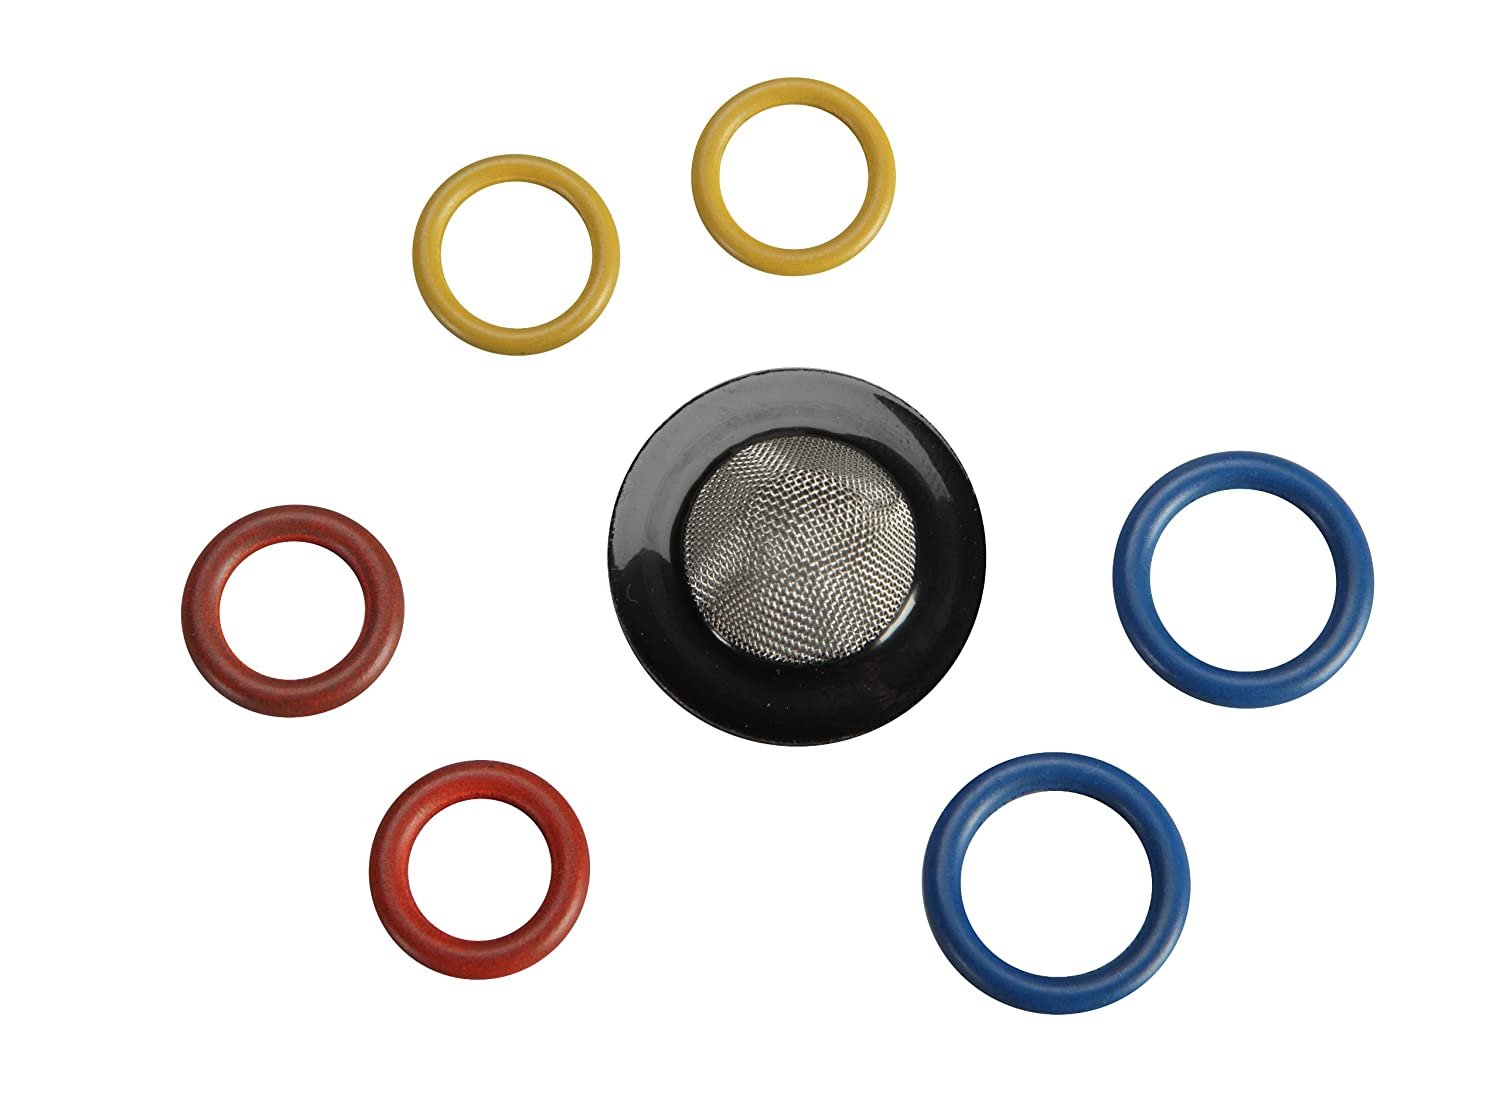 Briggs & Stratton 6198 Pressure Washer O-Ring Replacement Kit